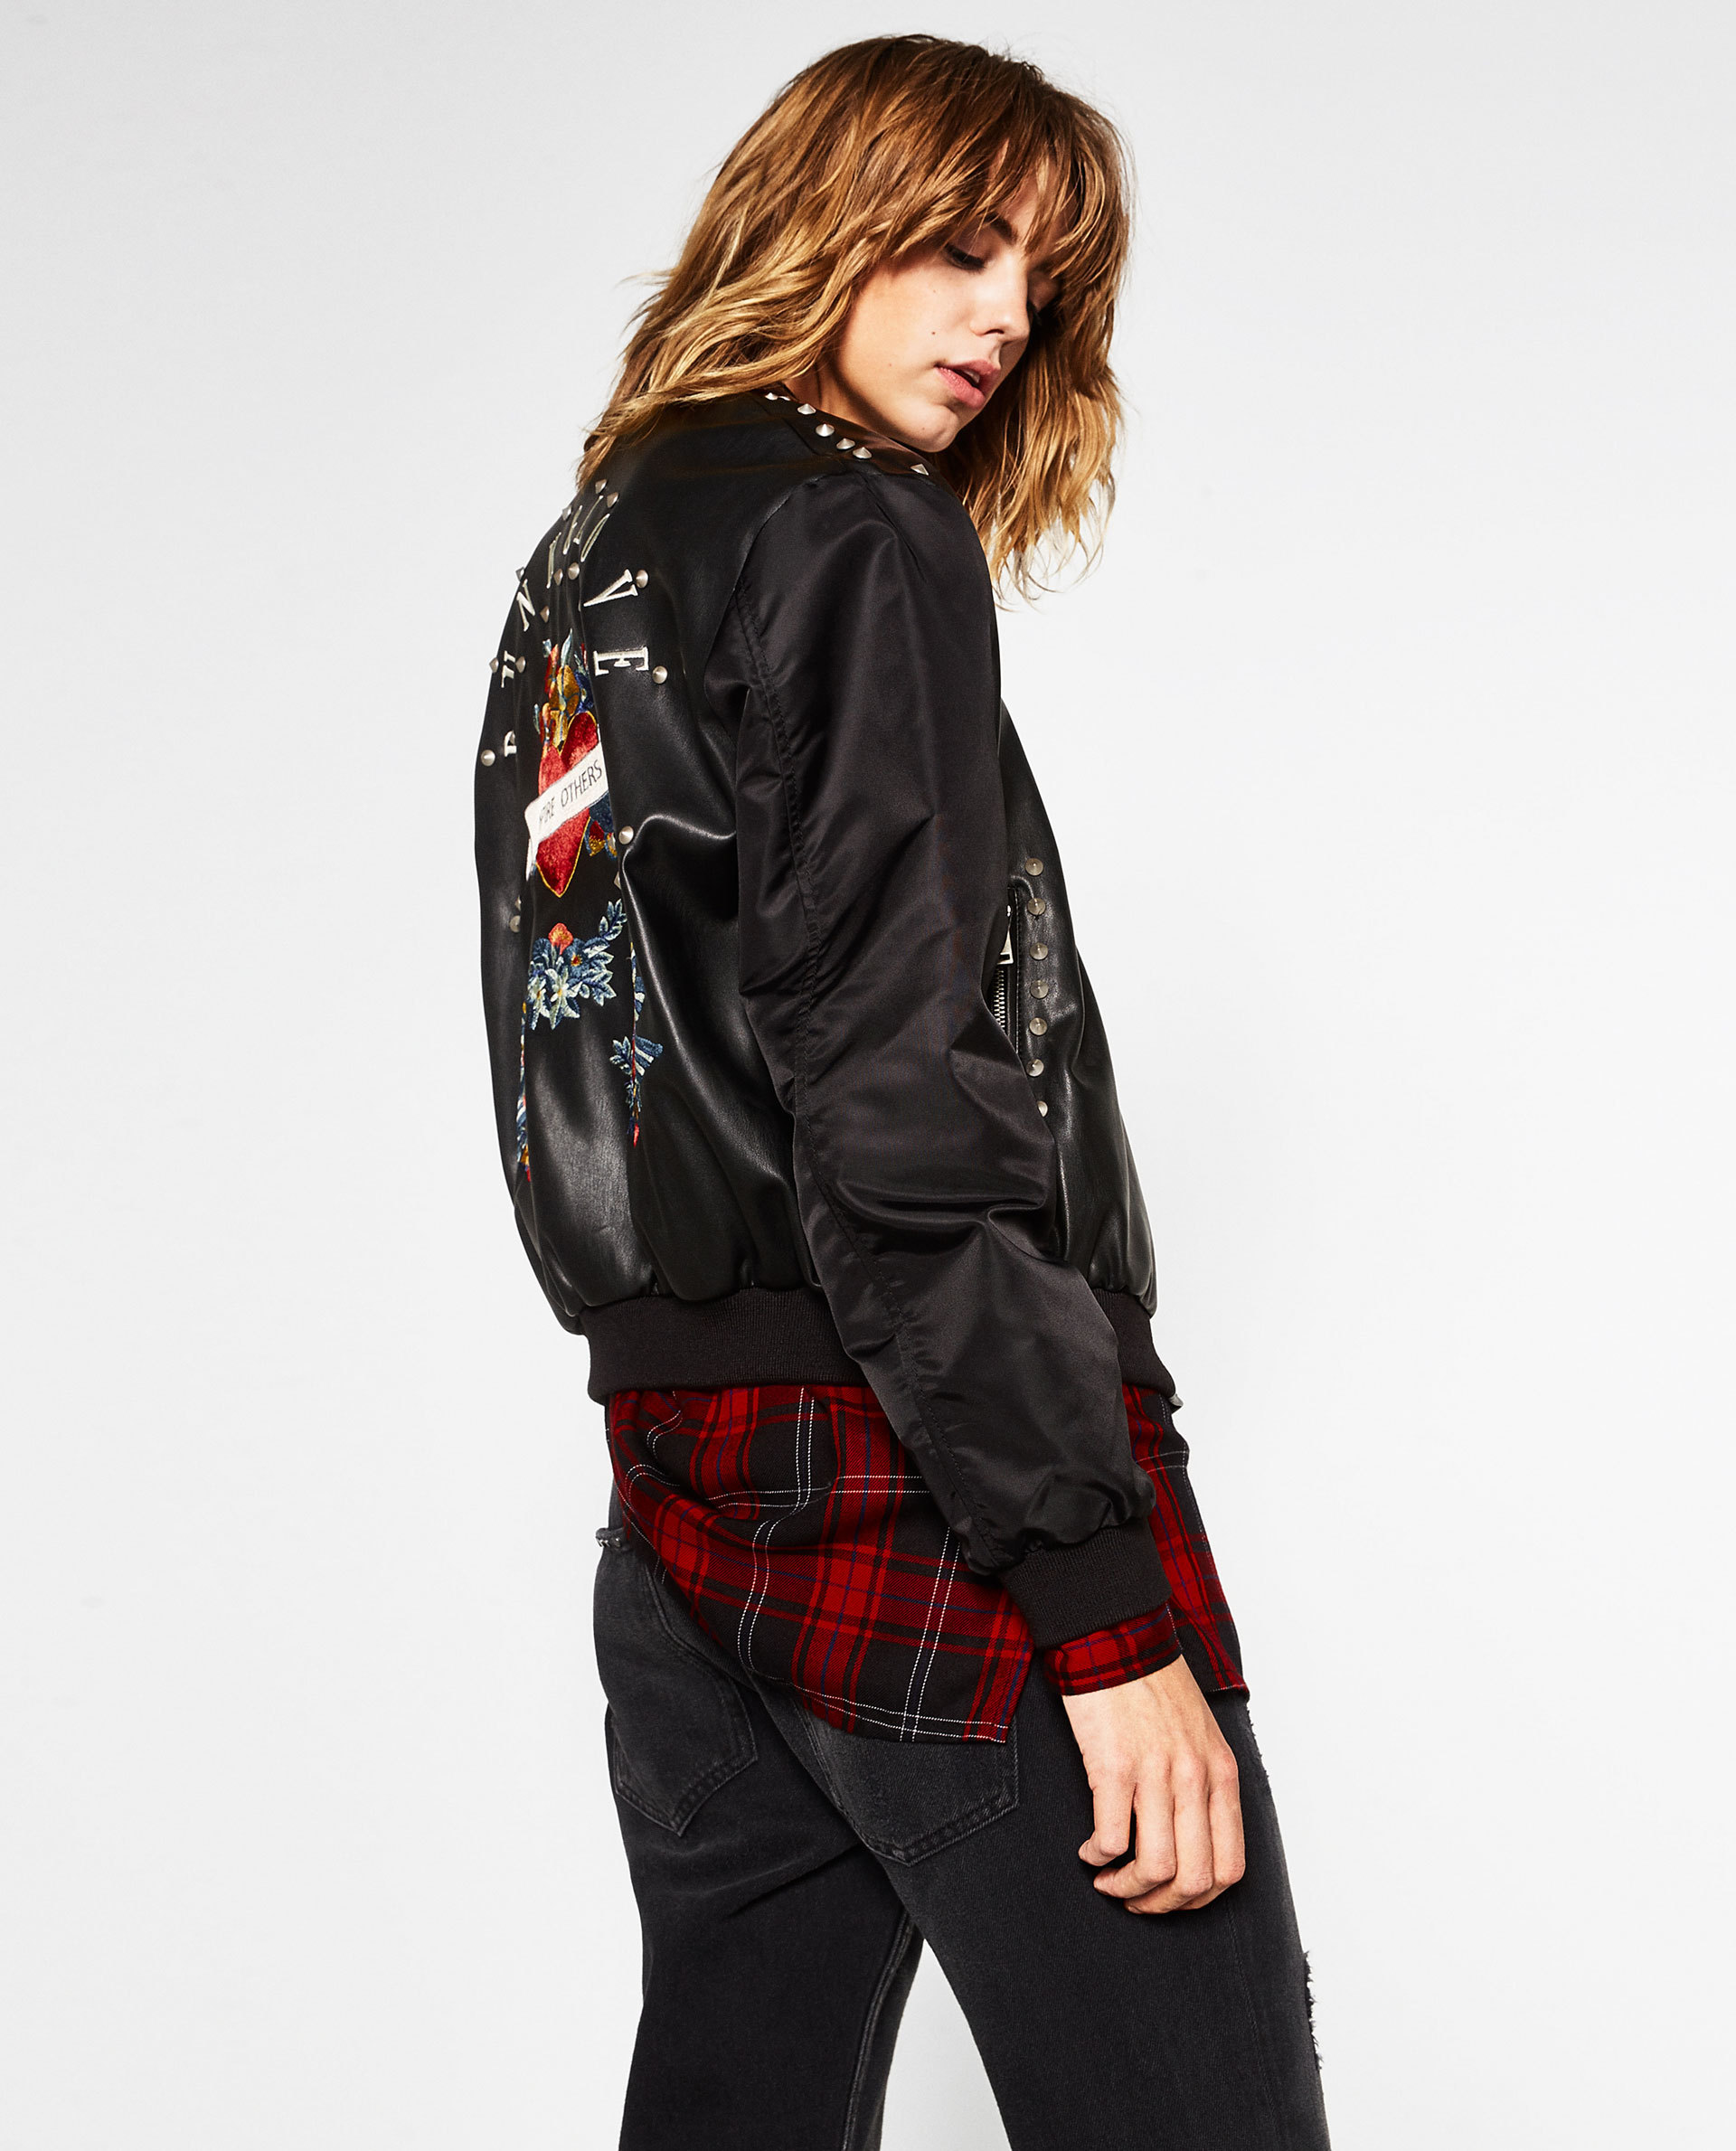 Zara artificial leather embroidered studded bomber jacket